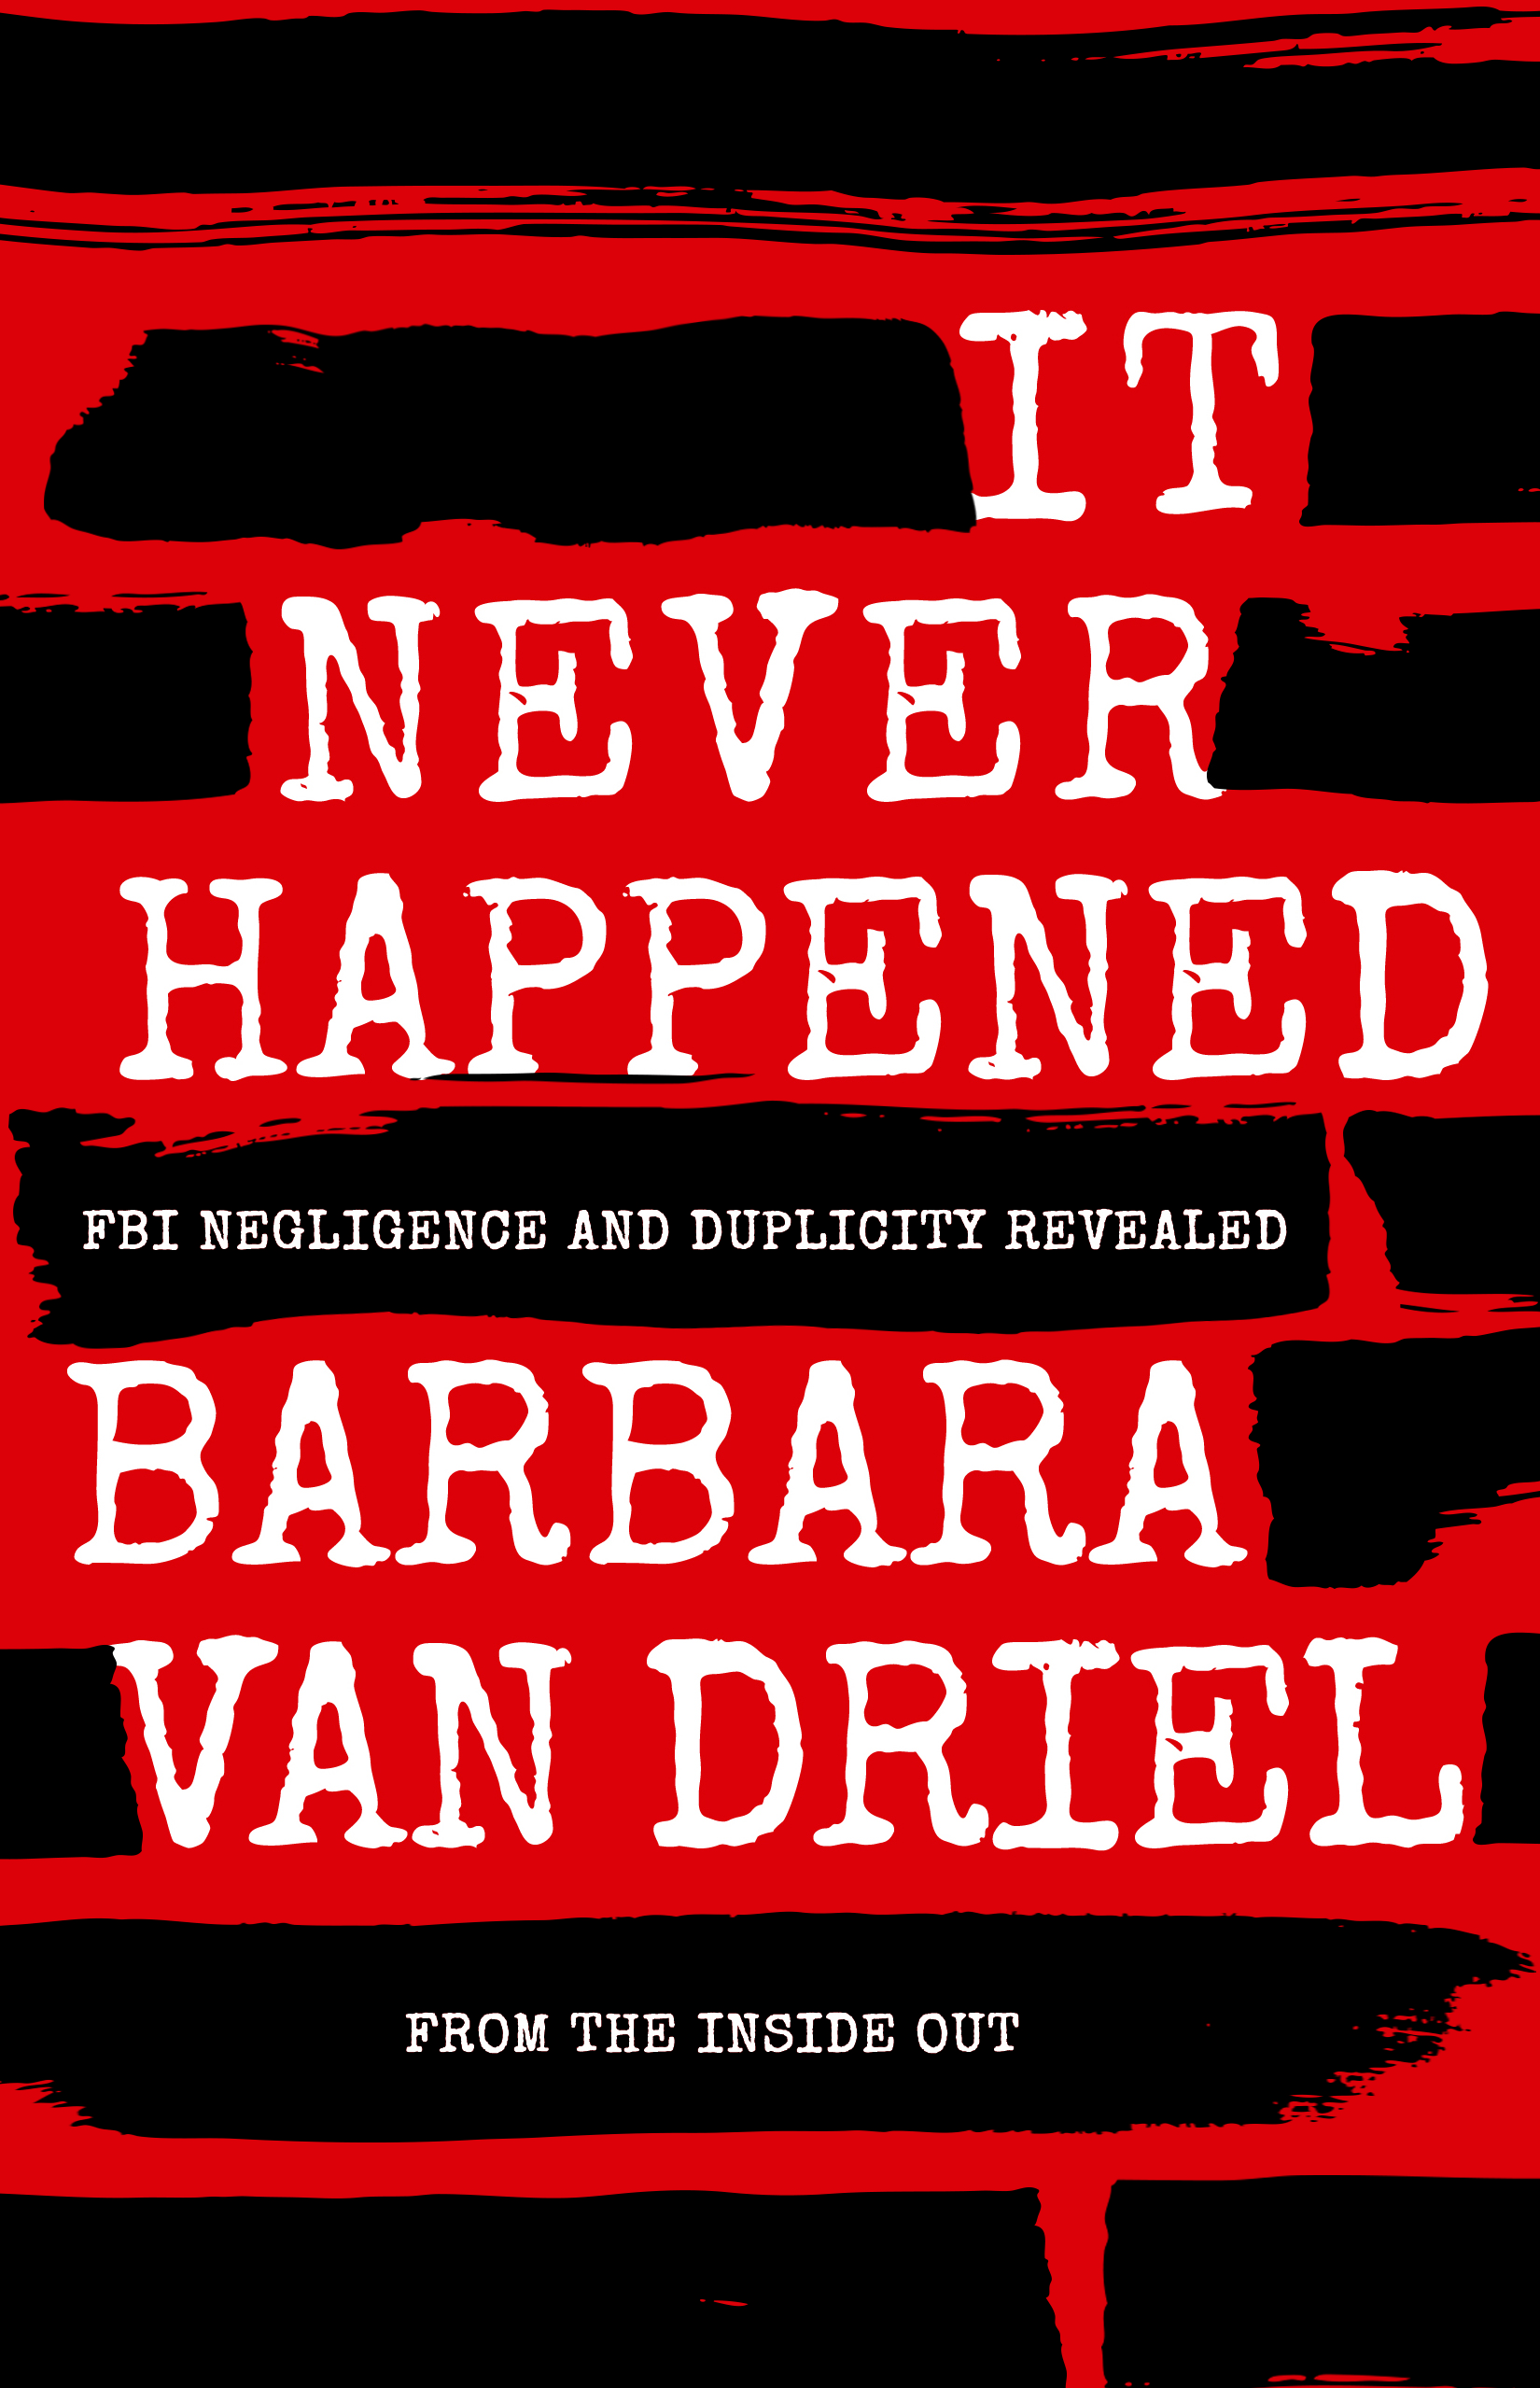 Synopsis: - It Never Happened: FBI Negligence and Duplicity Revealed from the Inside Out chronicles Barbara Van Driel's eight-year career as a Special Agent in the FBI, exposing the dysfunctional culture of one of the country's most formidable bureaucracies. With honesty and self-deprecating humor, Van Driel not only paints a searing picture of what it was like to work sensitive cases surrounded by senior agents who had lost their enthusiasm to serve their country and its citizens, but she describes a maddening culture of apathy that rendered the workplace a hostile environment. Diligence and integrity were rewarded with discouragement, resentment, and sexual aggression. Van Driel recounts multiple incidents of shocking sexual predatory behavior that were met with indifference by the established order, exposing an entrenched ethos of conformity and silence in the face of injustice and abuse.